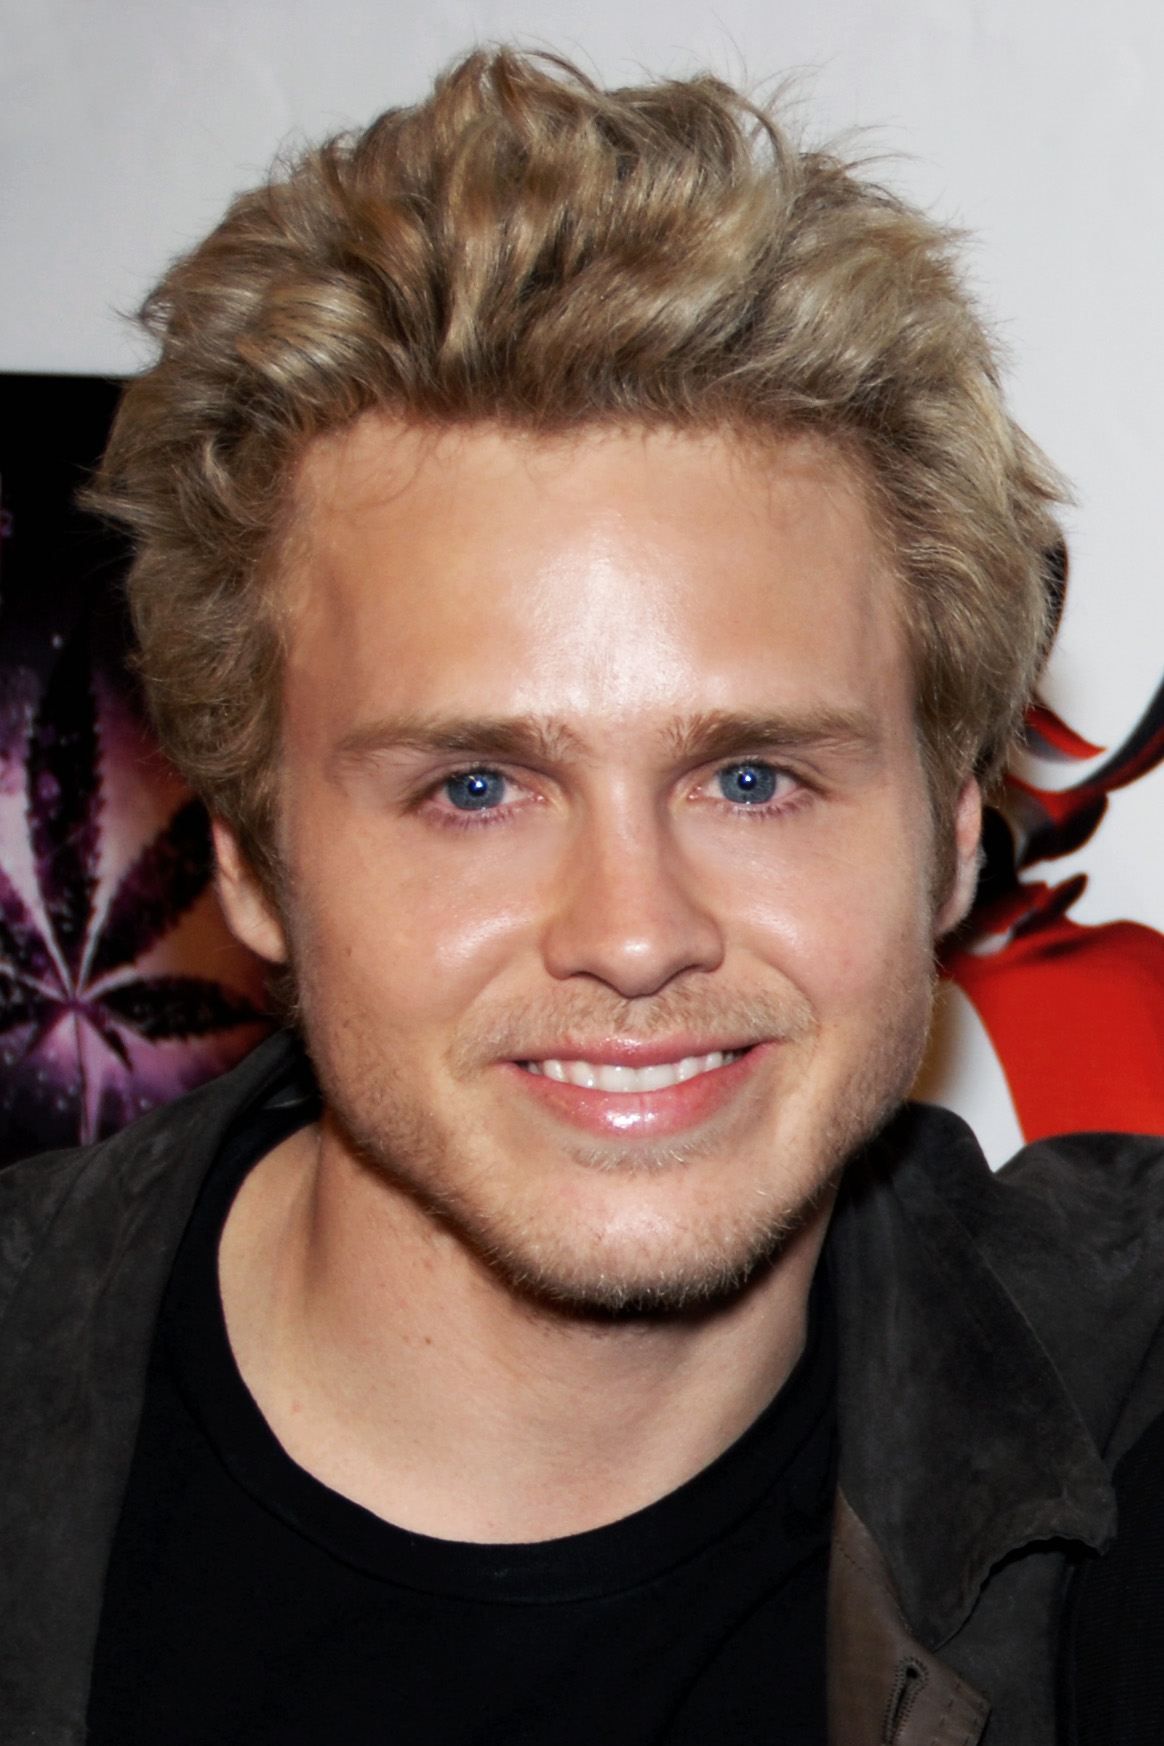 The 35-year old son of father (?) and mother(?) Spencer Pratt in 2018 photo. Spencer Pratt earned a  million dollar salary - leaving the net worth at 0.1 million in 2018